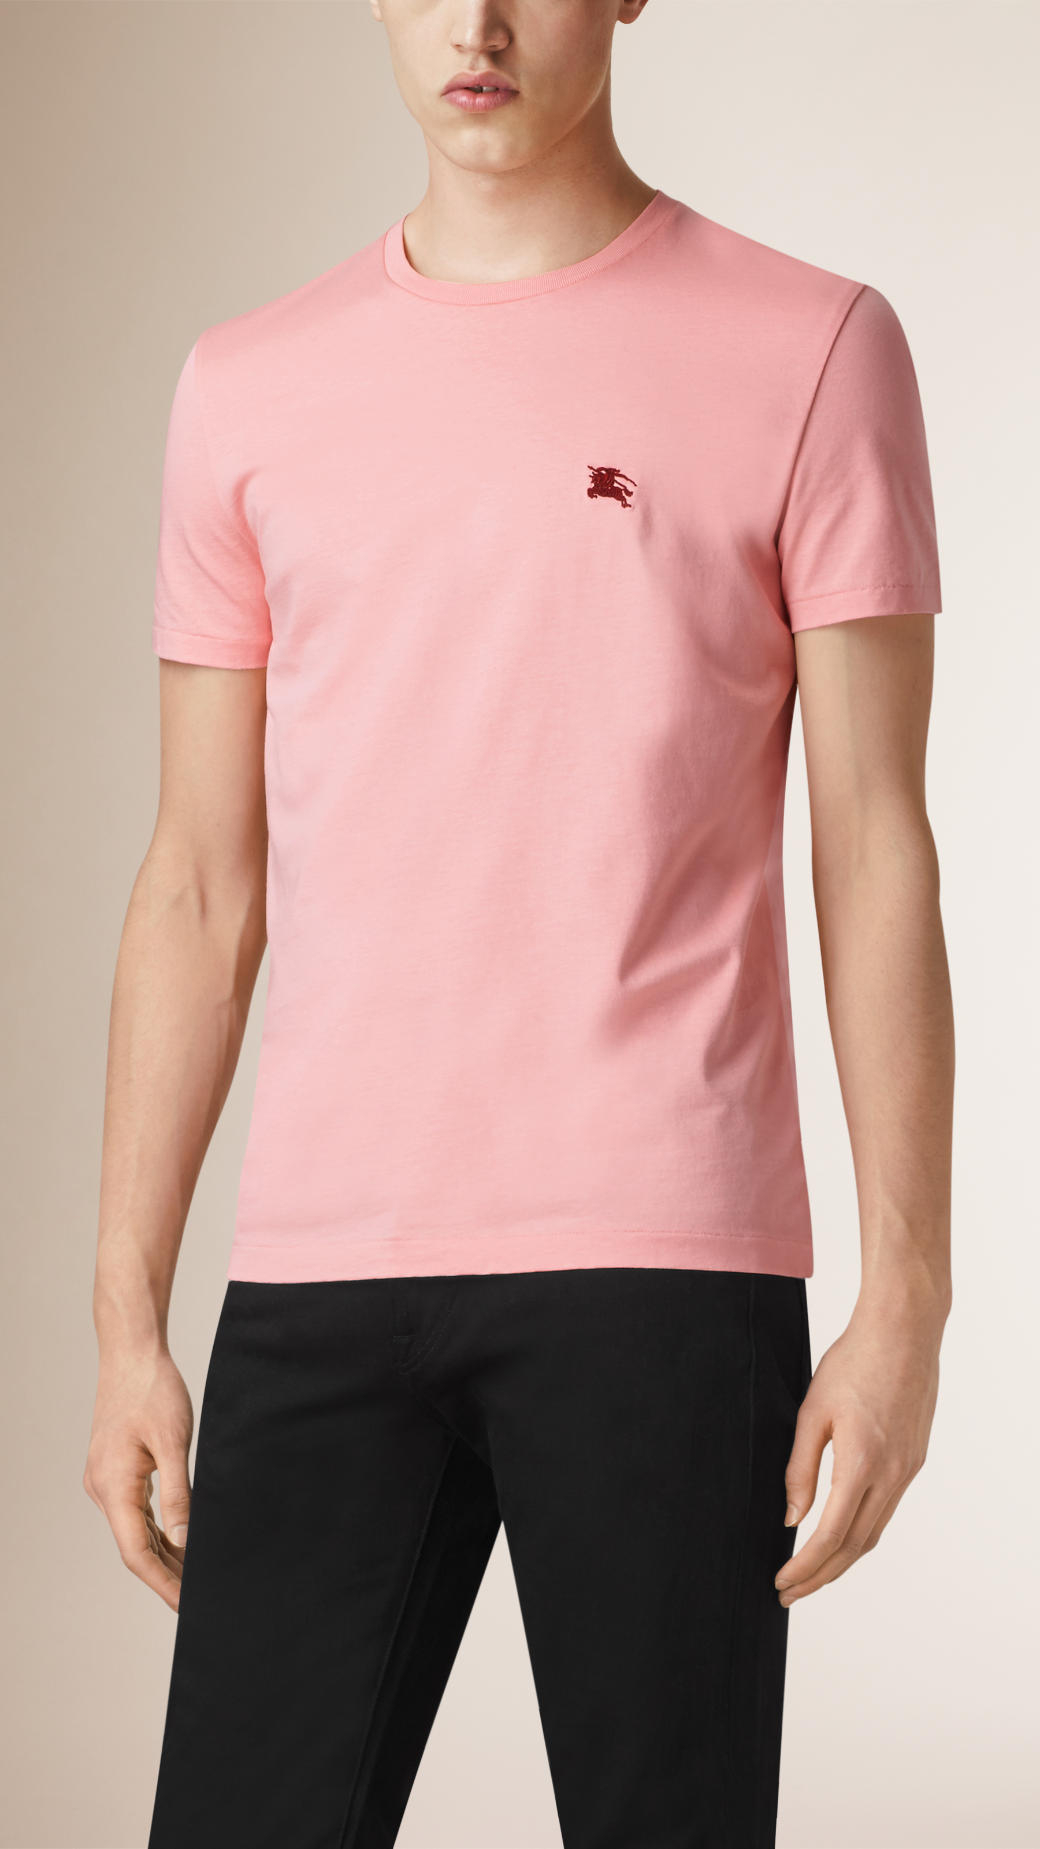 Burberry liquid soft cotton t shirt in pink for men coral for Soft cotton dress shirts